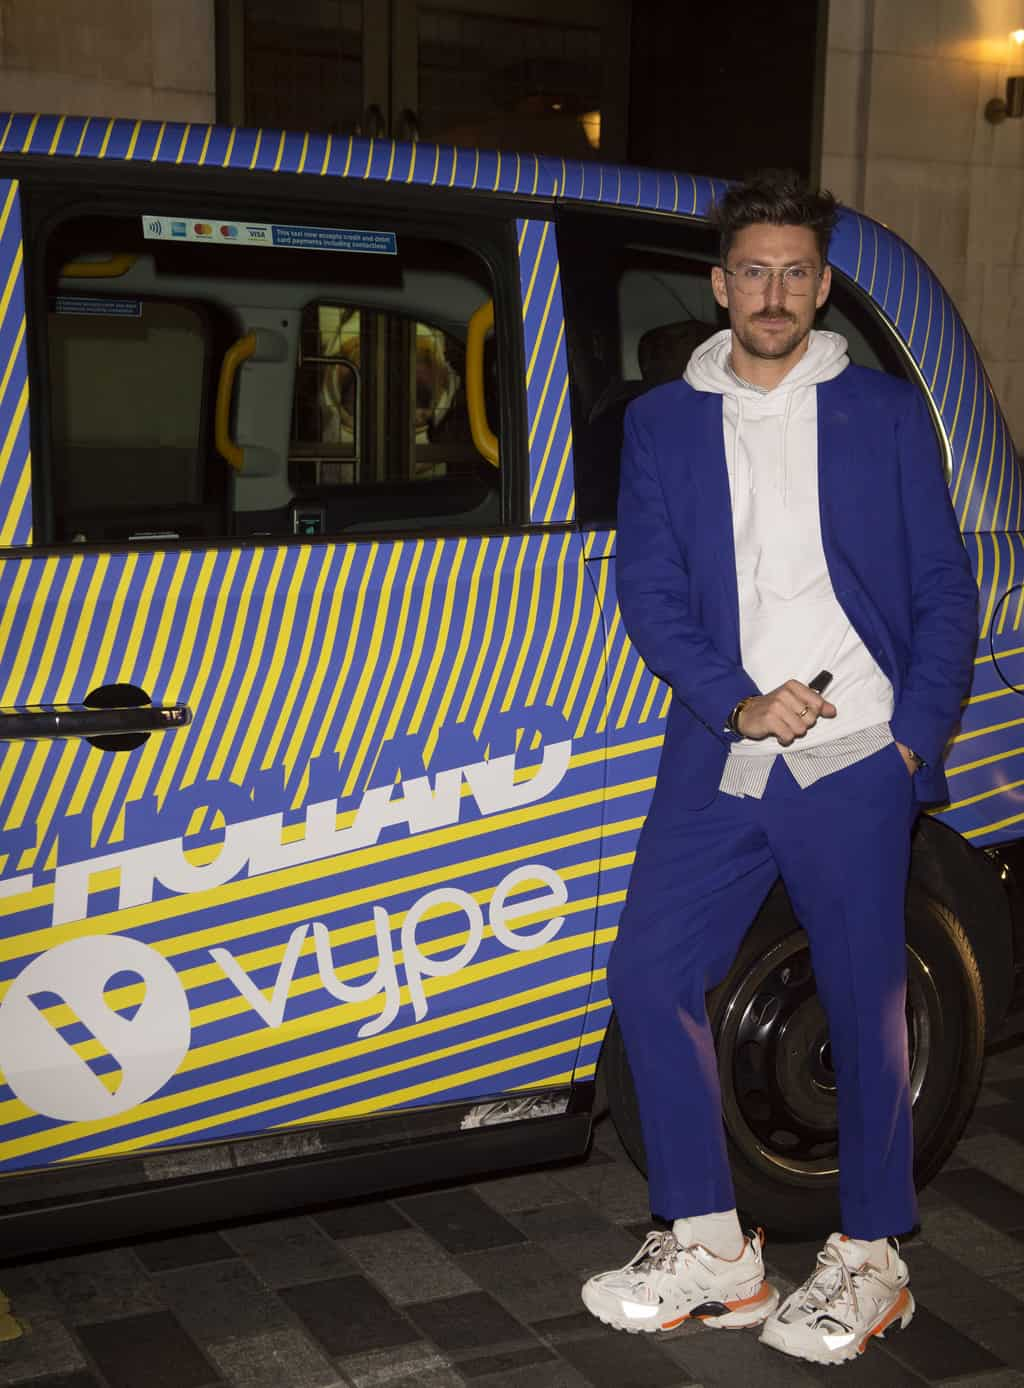 Fashion designer Henry Holland poses next to a London taxi